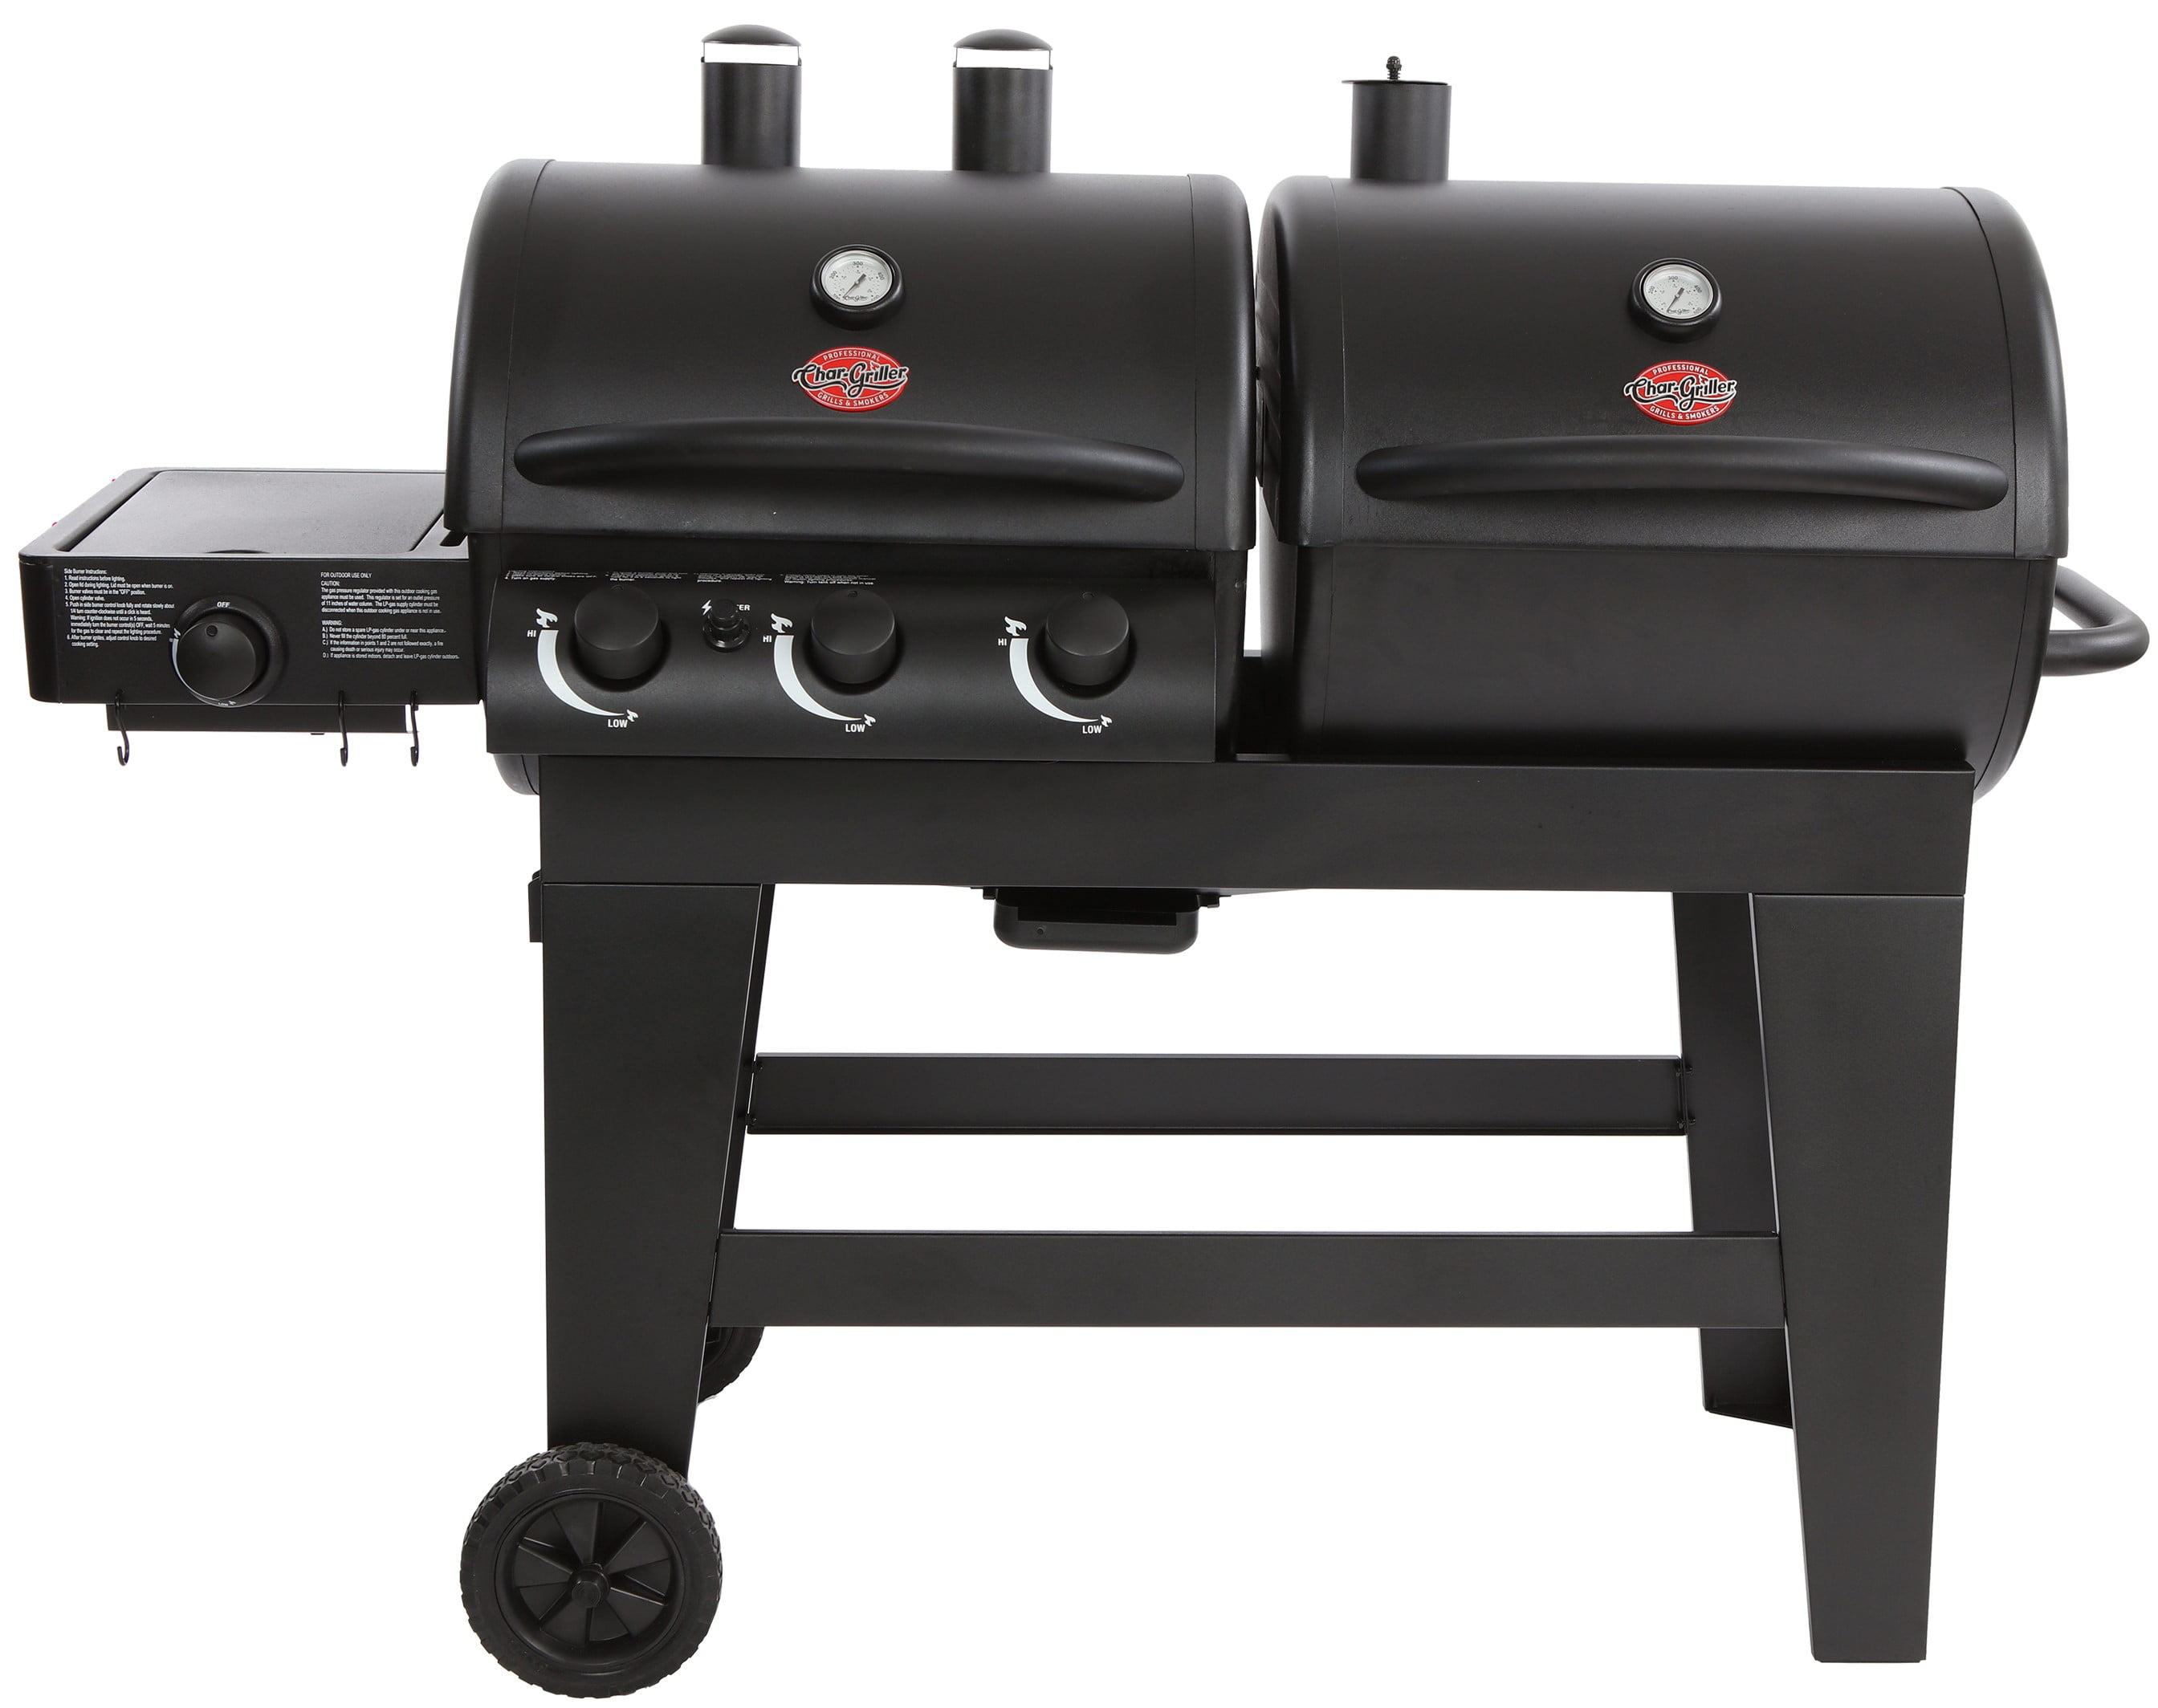 Char-Griller Dual Function Gas & Charcoal Grill, Black, E5072 by Char-Griller